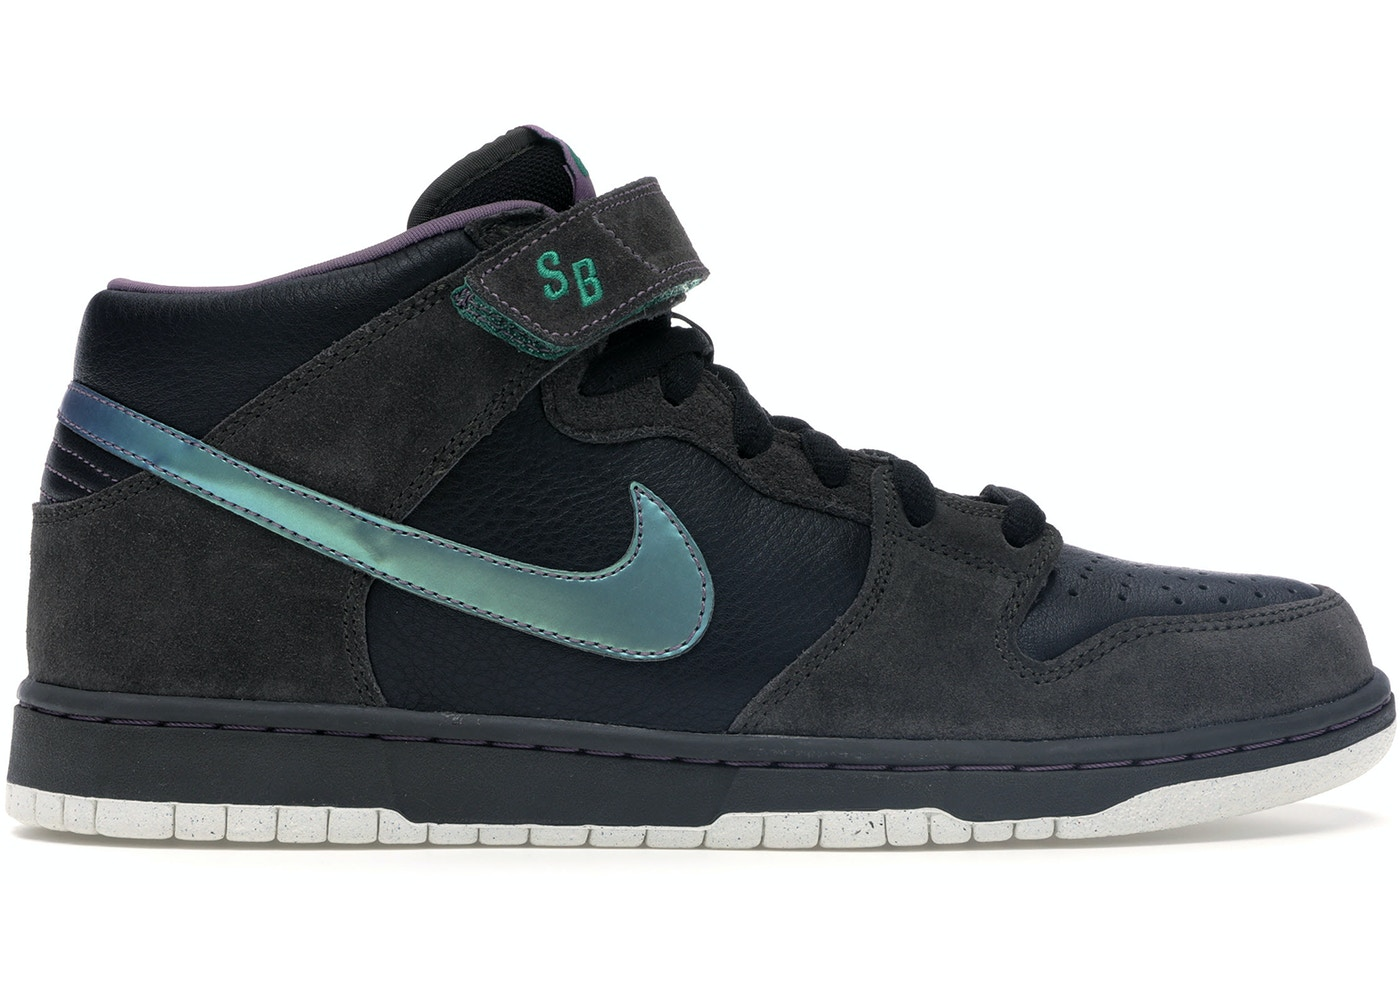 online retailer 28535 837eb Nike SB Dunk Mid Northern Lights